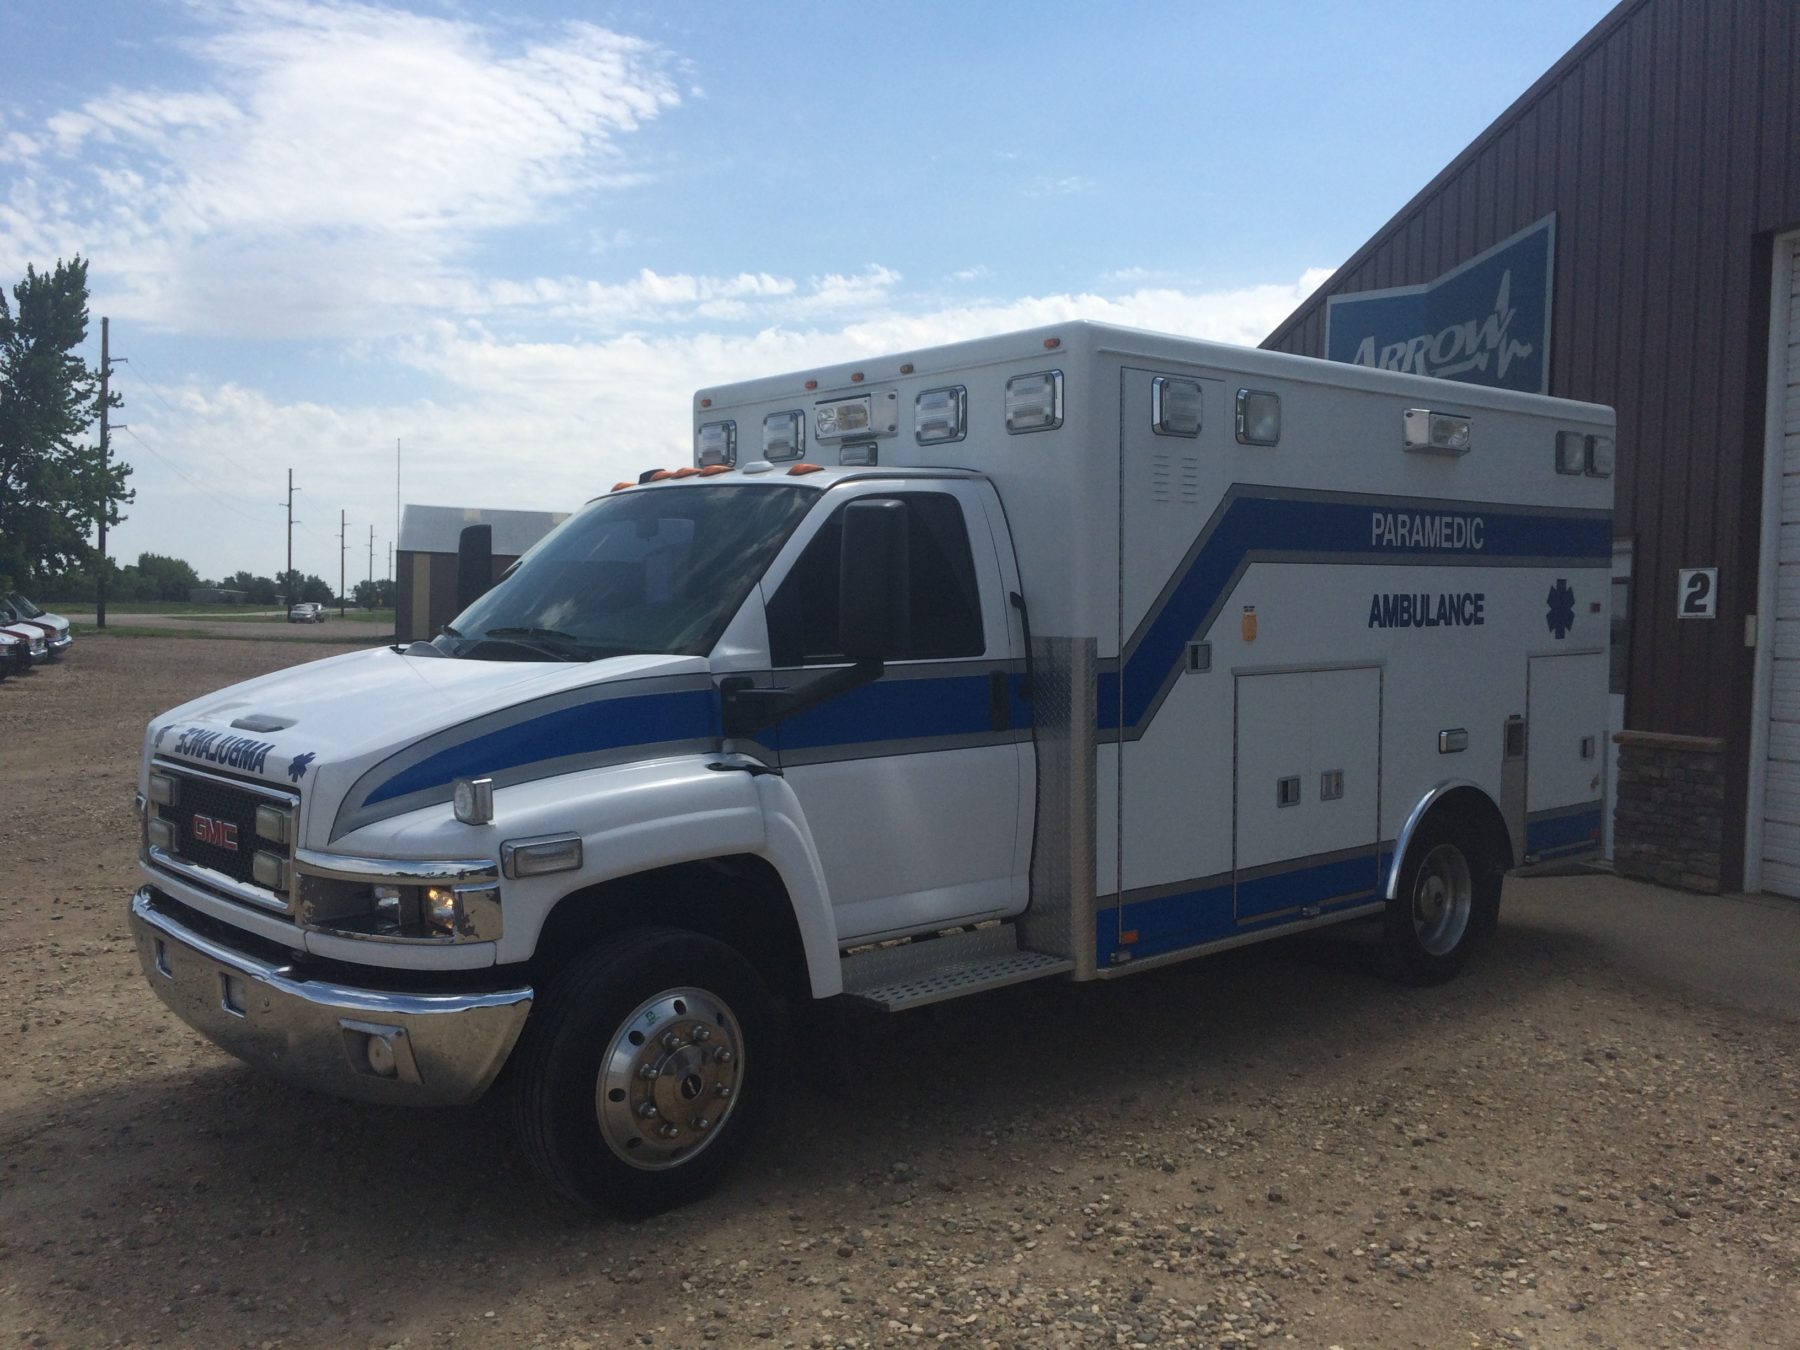 2006 Chevrolet C4500 Heavy Duty Ambulance For Sale – Picture 7